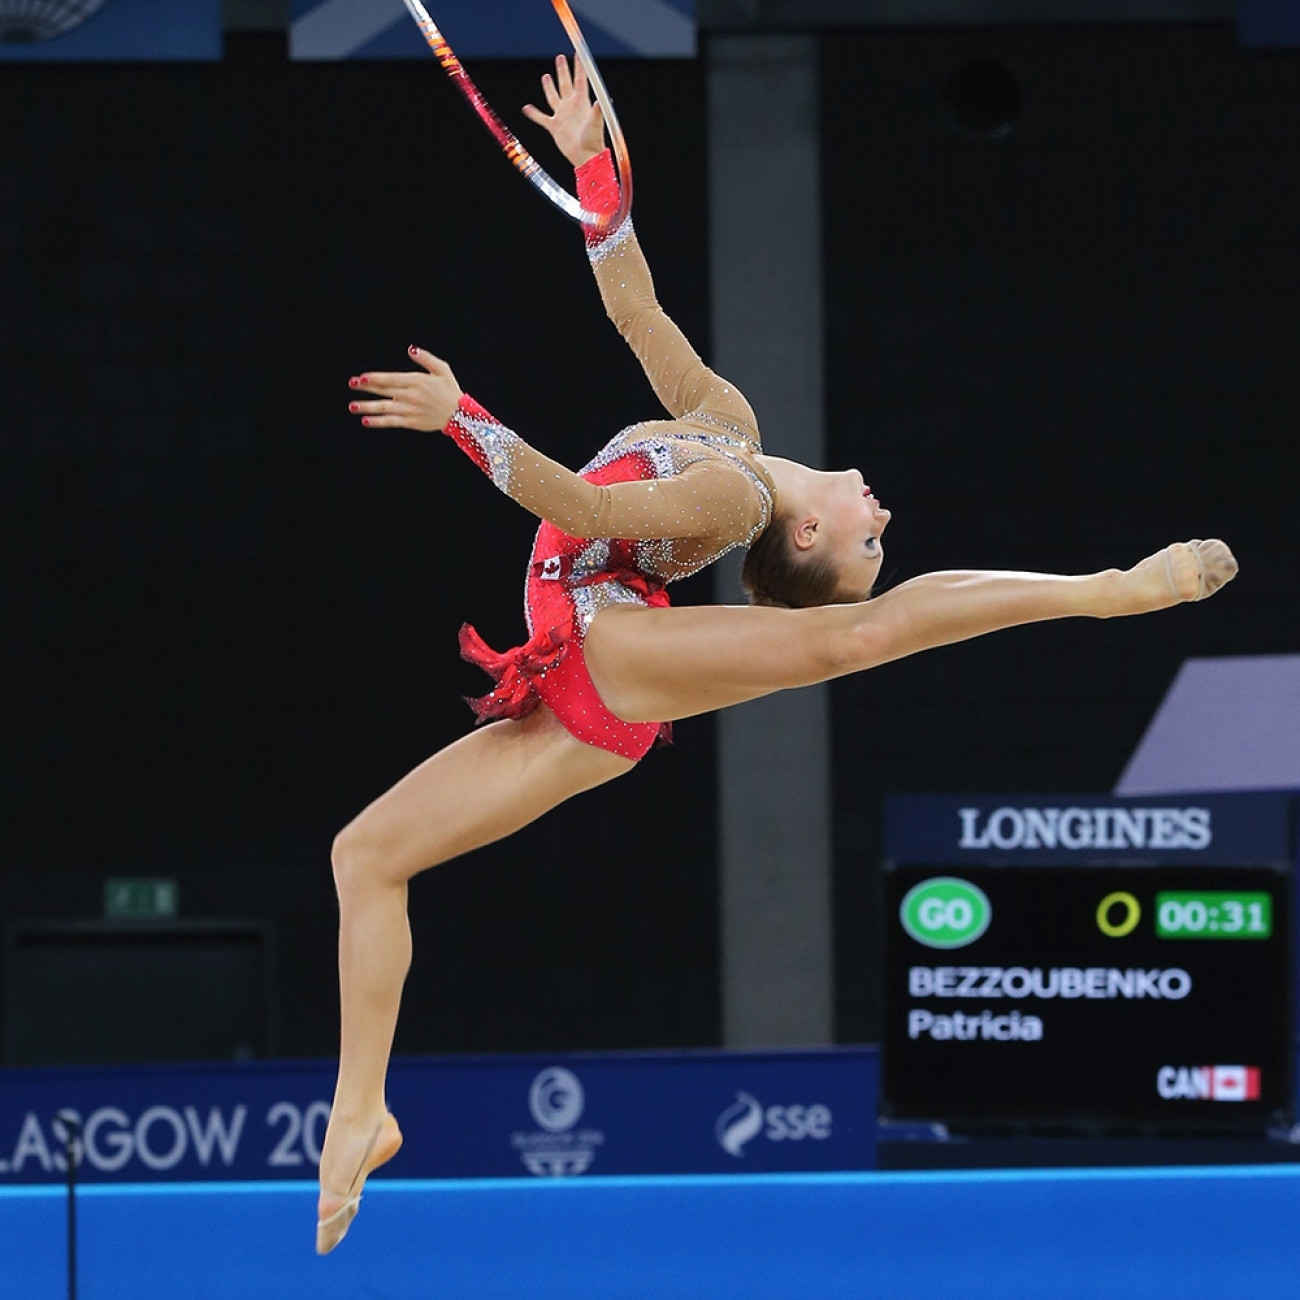 a look at the flexible sport of rhythmic gymnastics Sports that use dance or gymnastics being flexible and having upper strength are important for dance and gymnastics related articles 1 [easiest way]   what is the easiest way to do a split or learn how to do one 2 [rhythmic gymnastics]   different formations of rhythmic gymnastics 3.